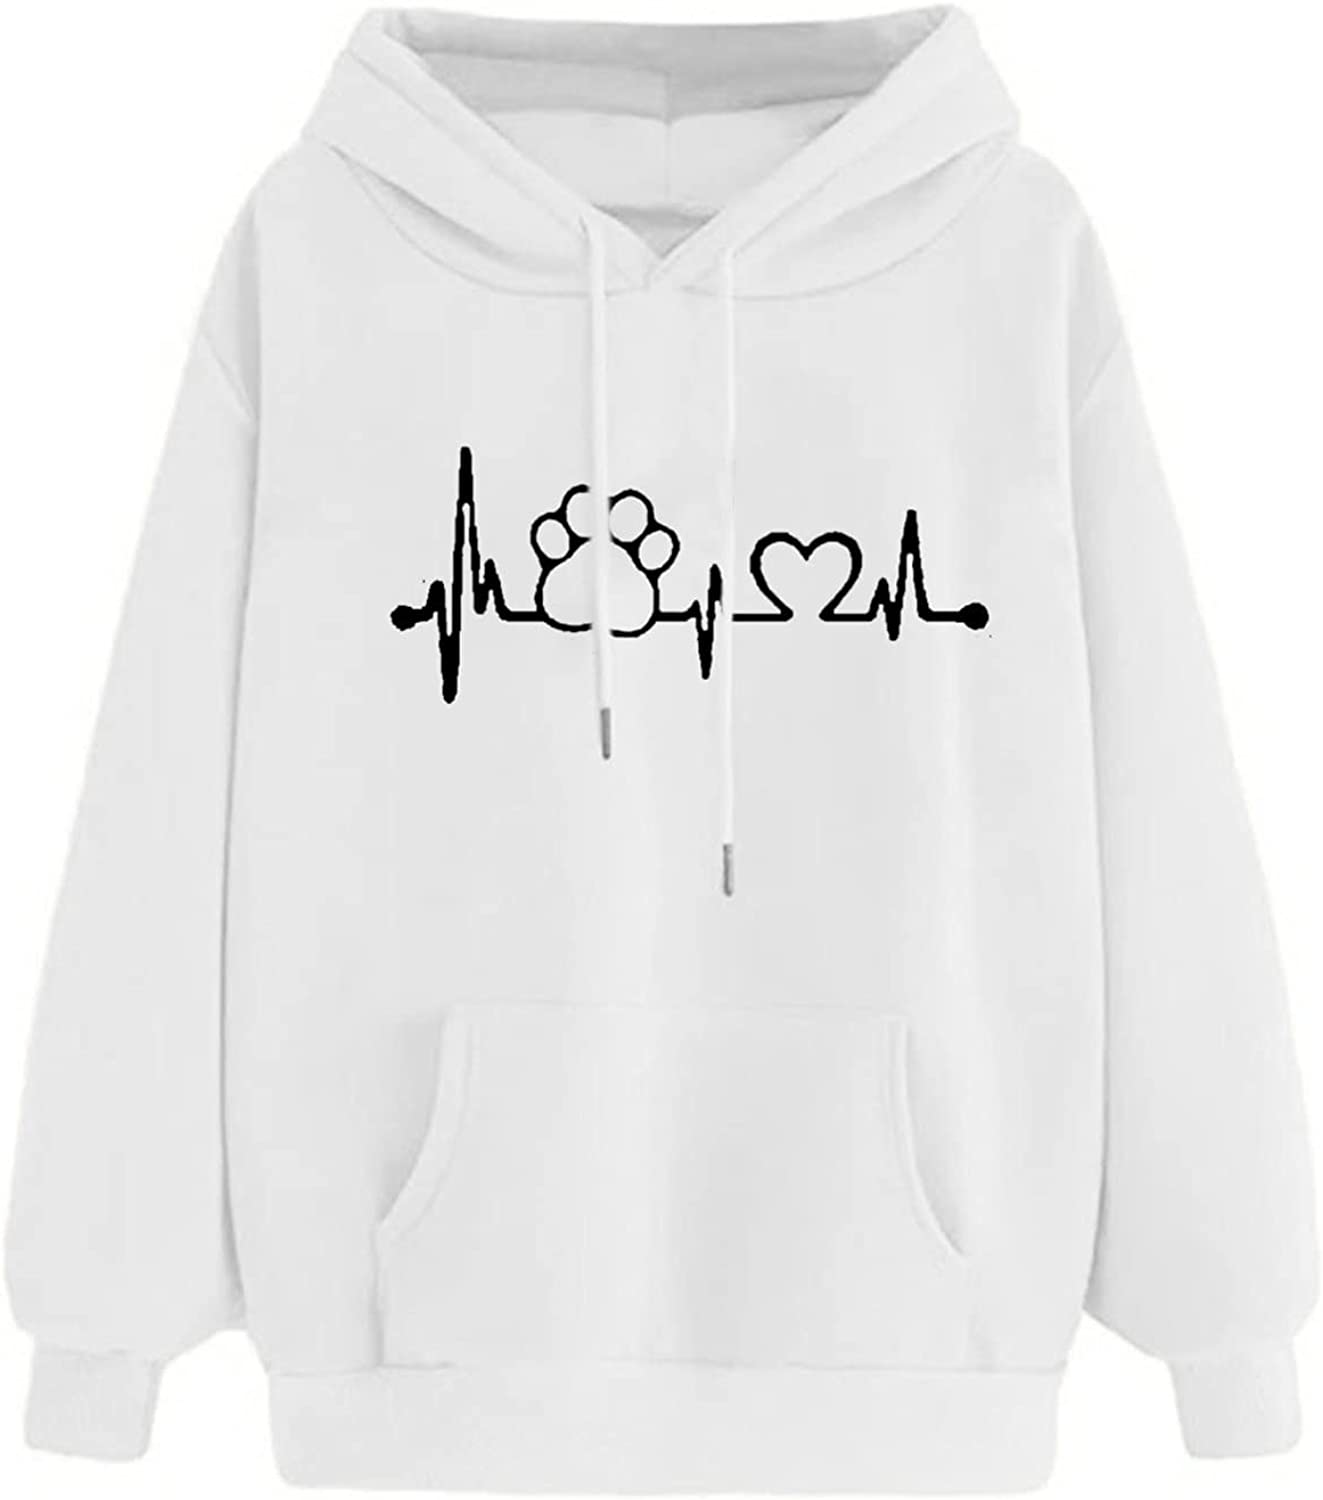 Women's Cute Graphic Hoodies Long Sleeve Sweatshirts Plus Size Loose Pullover Solid Color Casual Tops